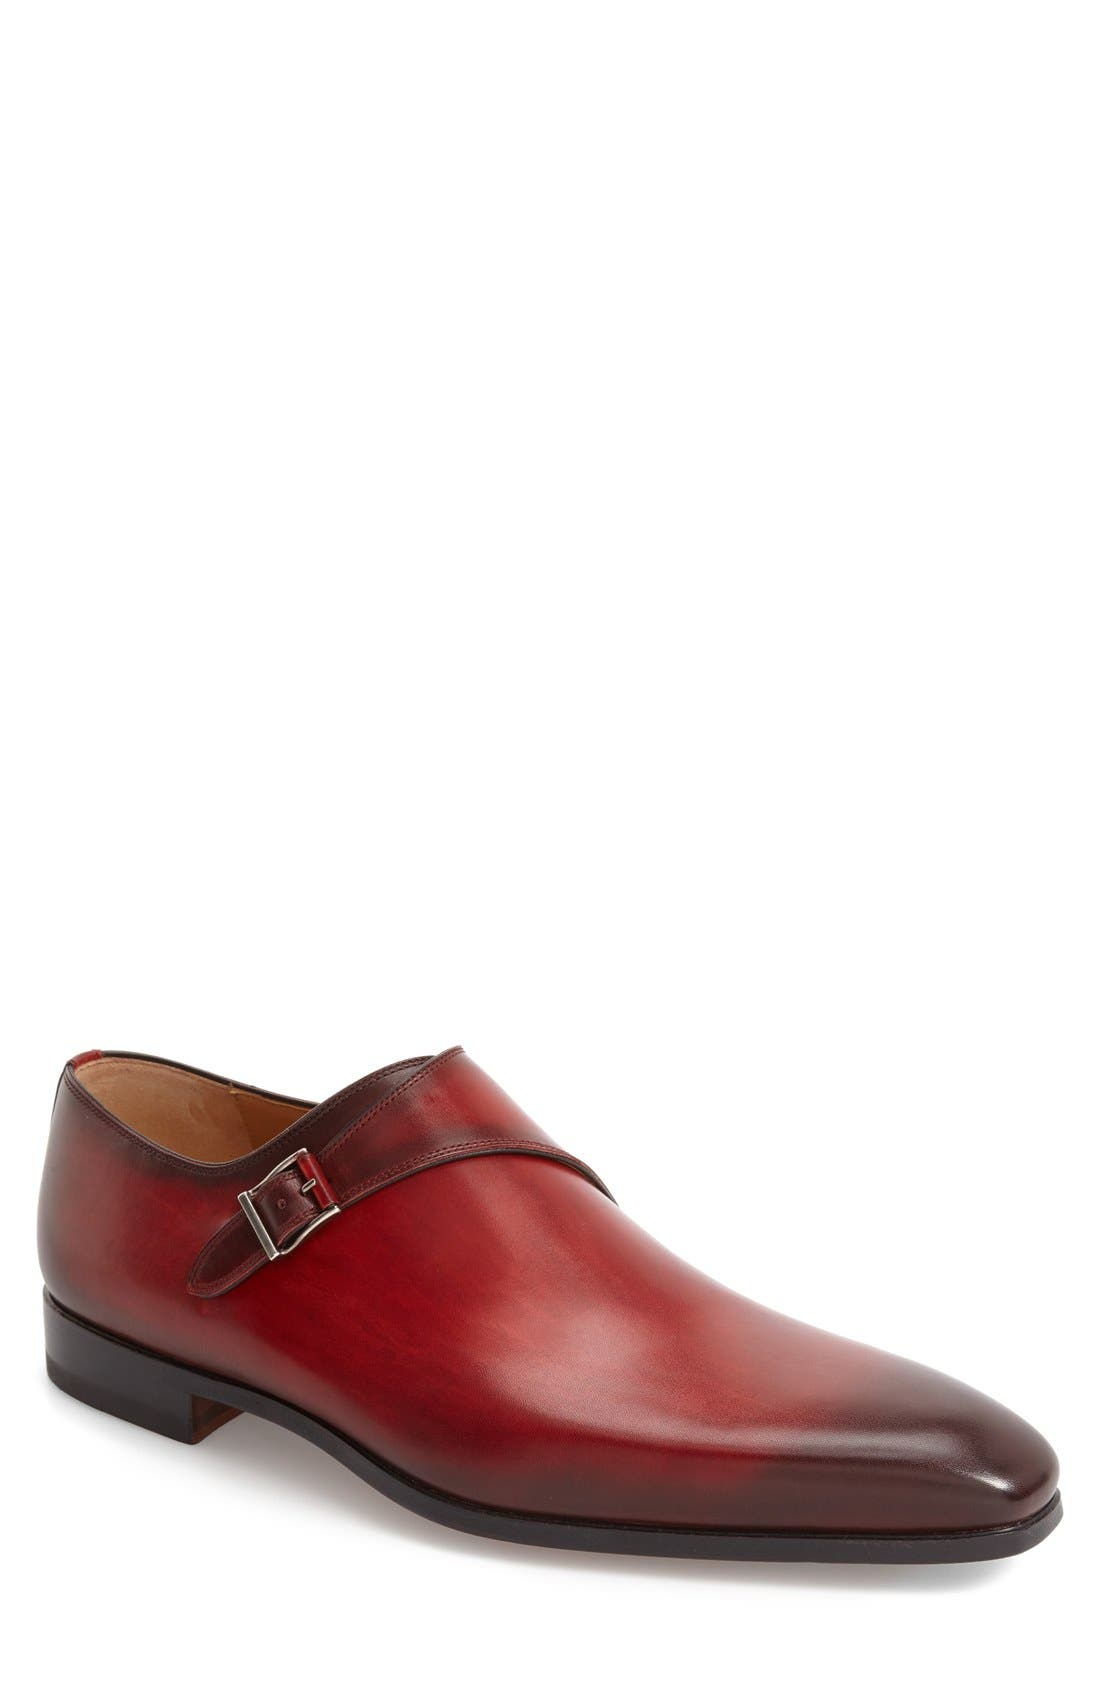 Efren Monk Strap Shoe,                             Main thumbnail 1, color,                             600